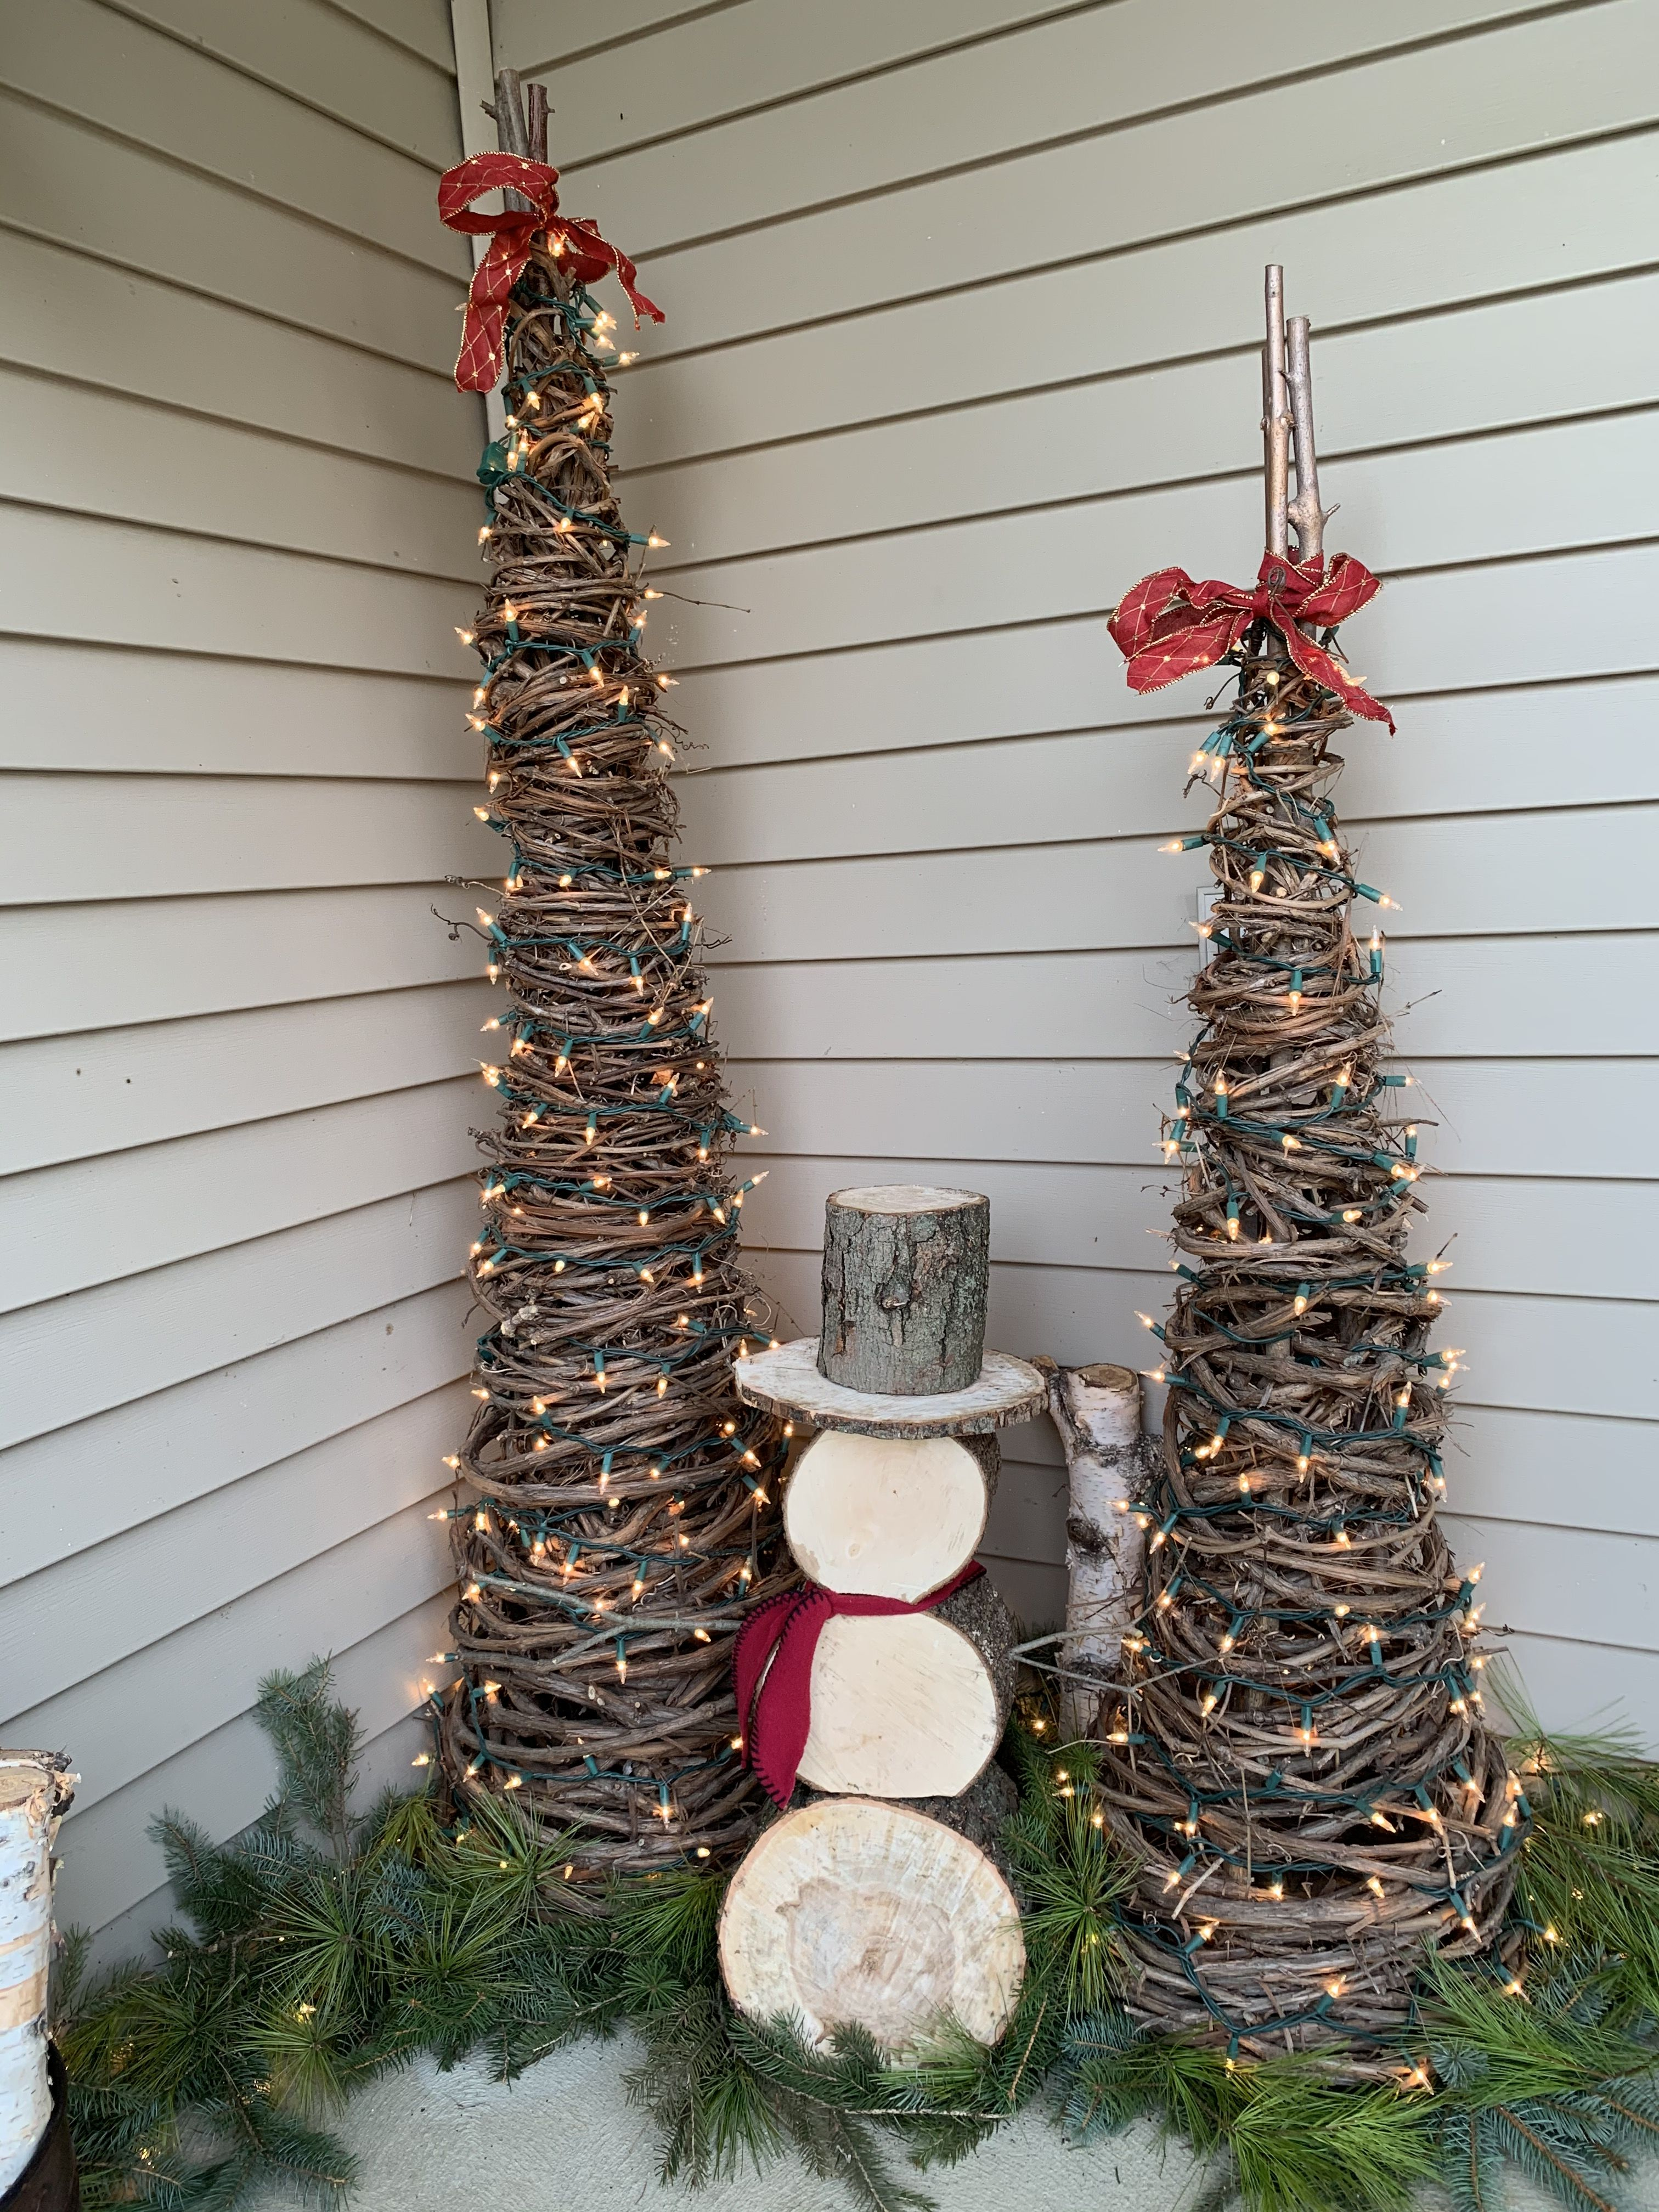 Pin By Monica Offman On Christmas Porch Christmas Porch Ladder Decor Decor